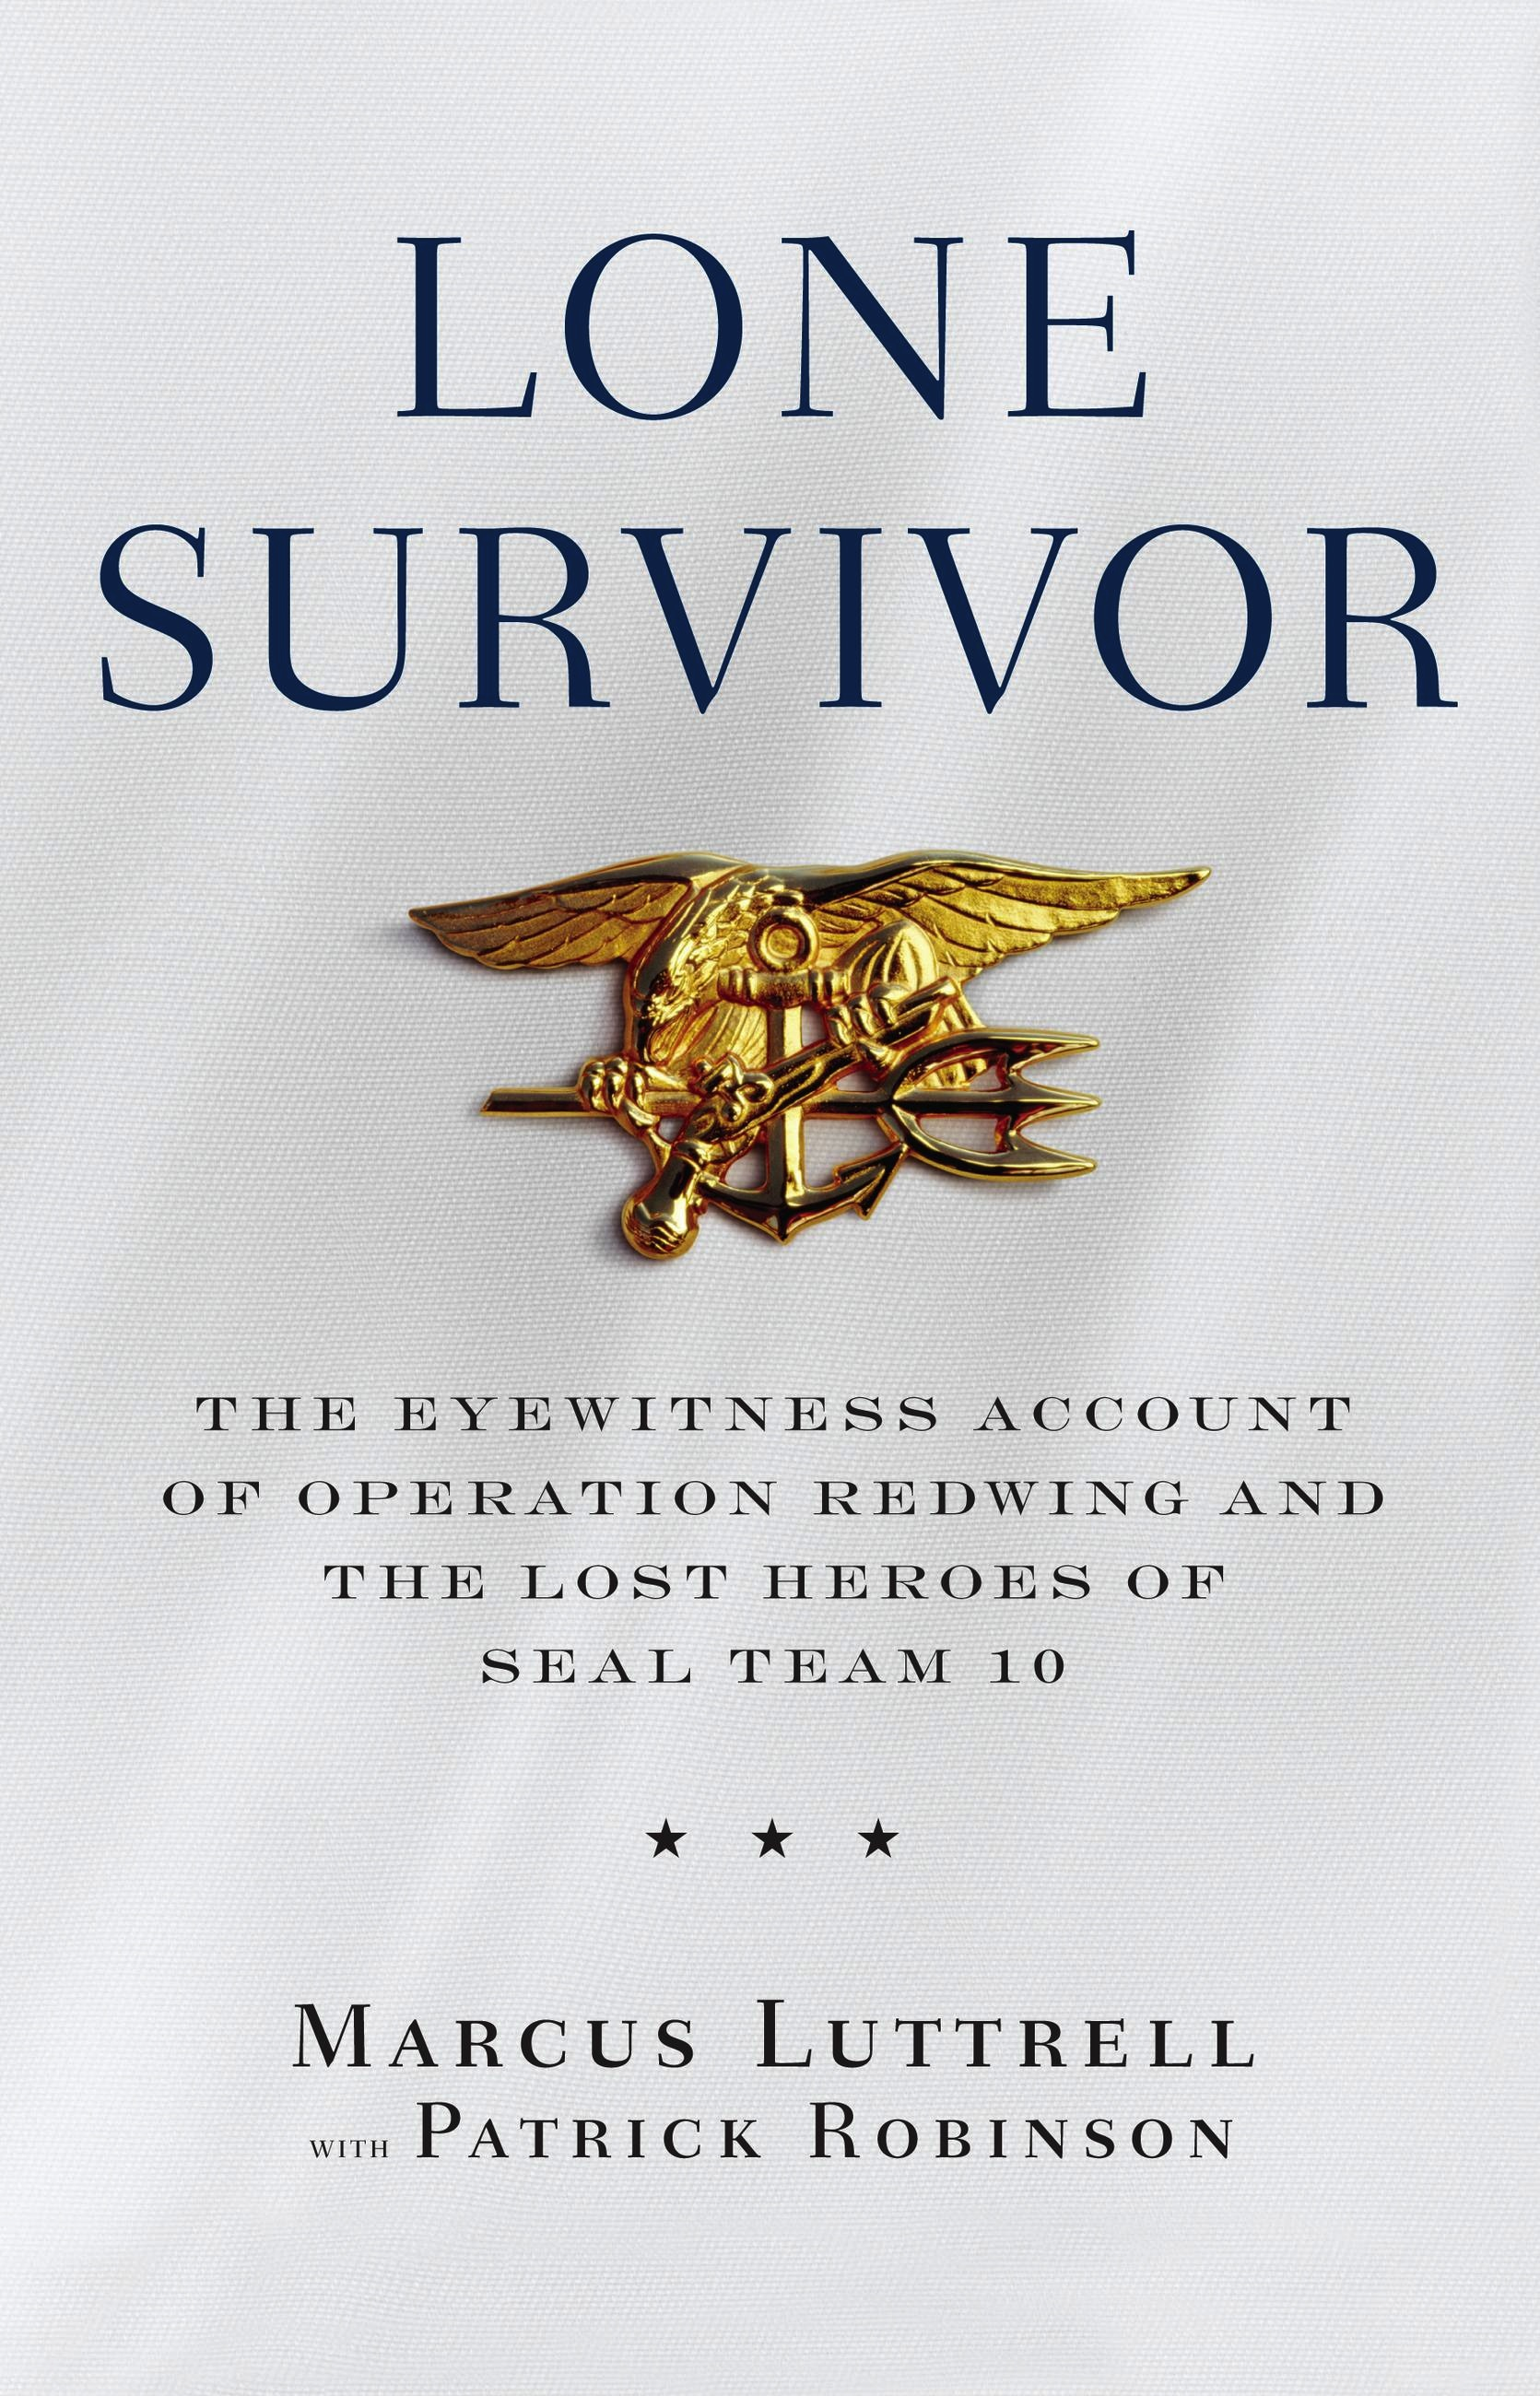 Lone Survivor by Marcus Luttrell | Hachette Book Group